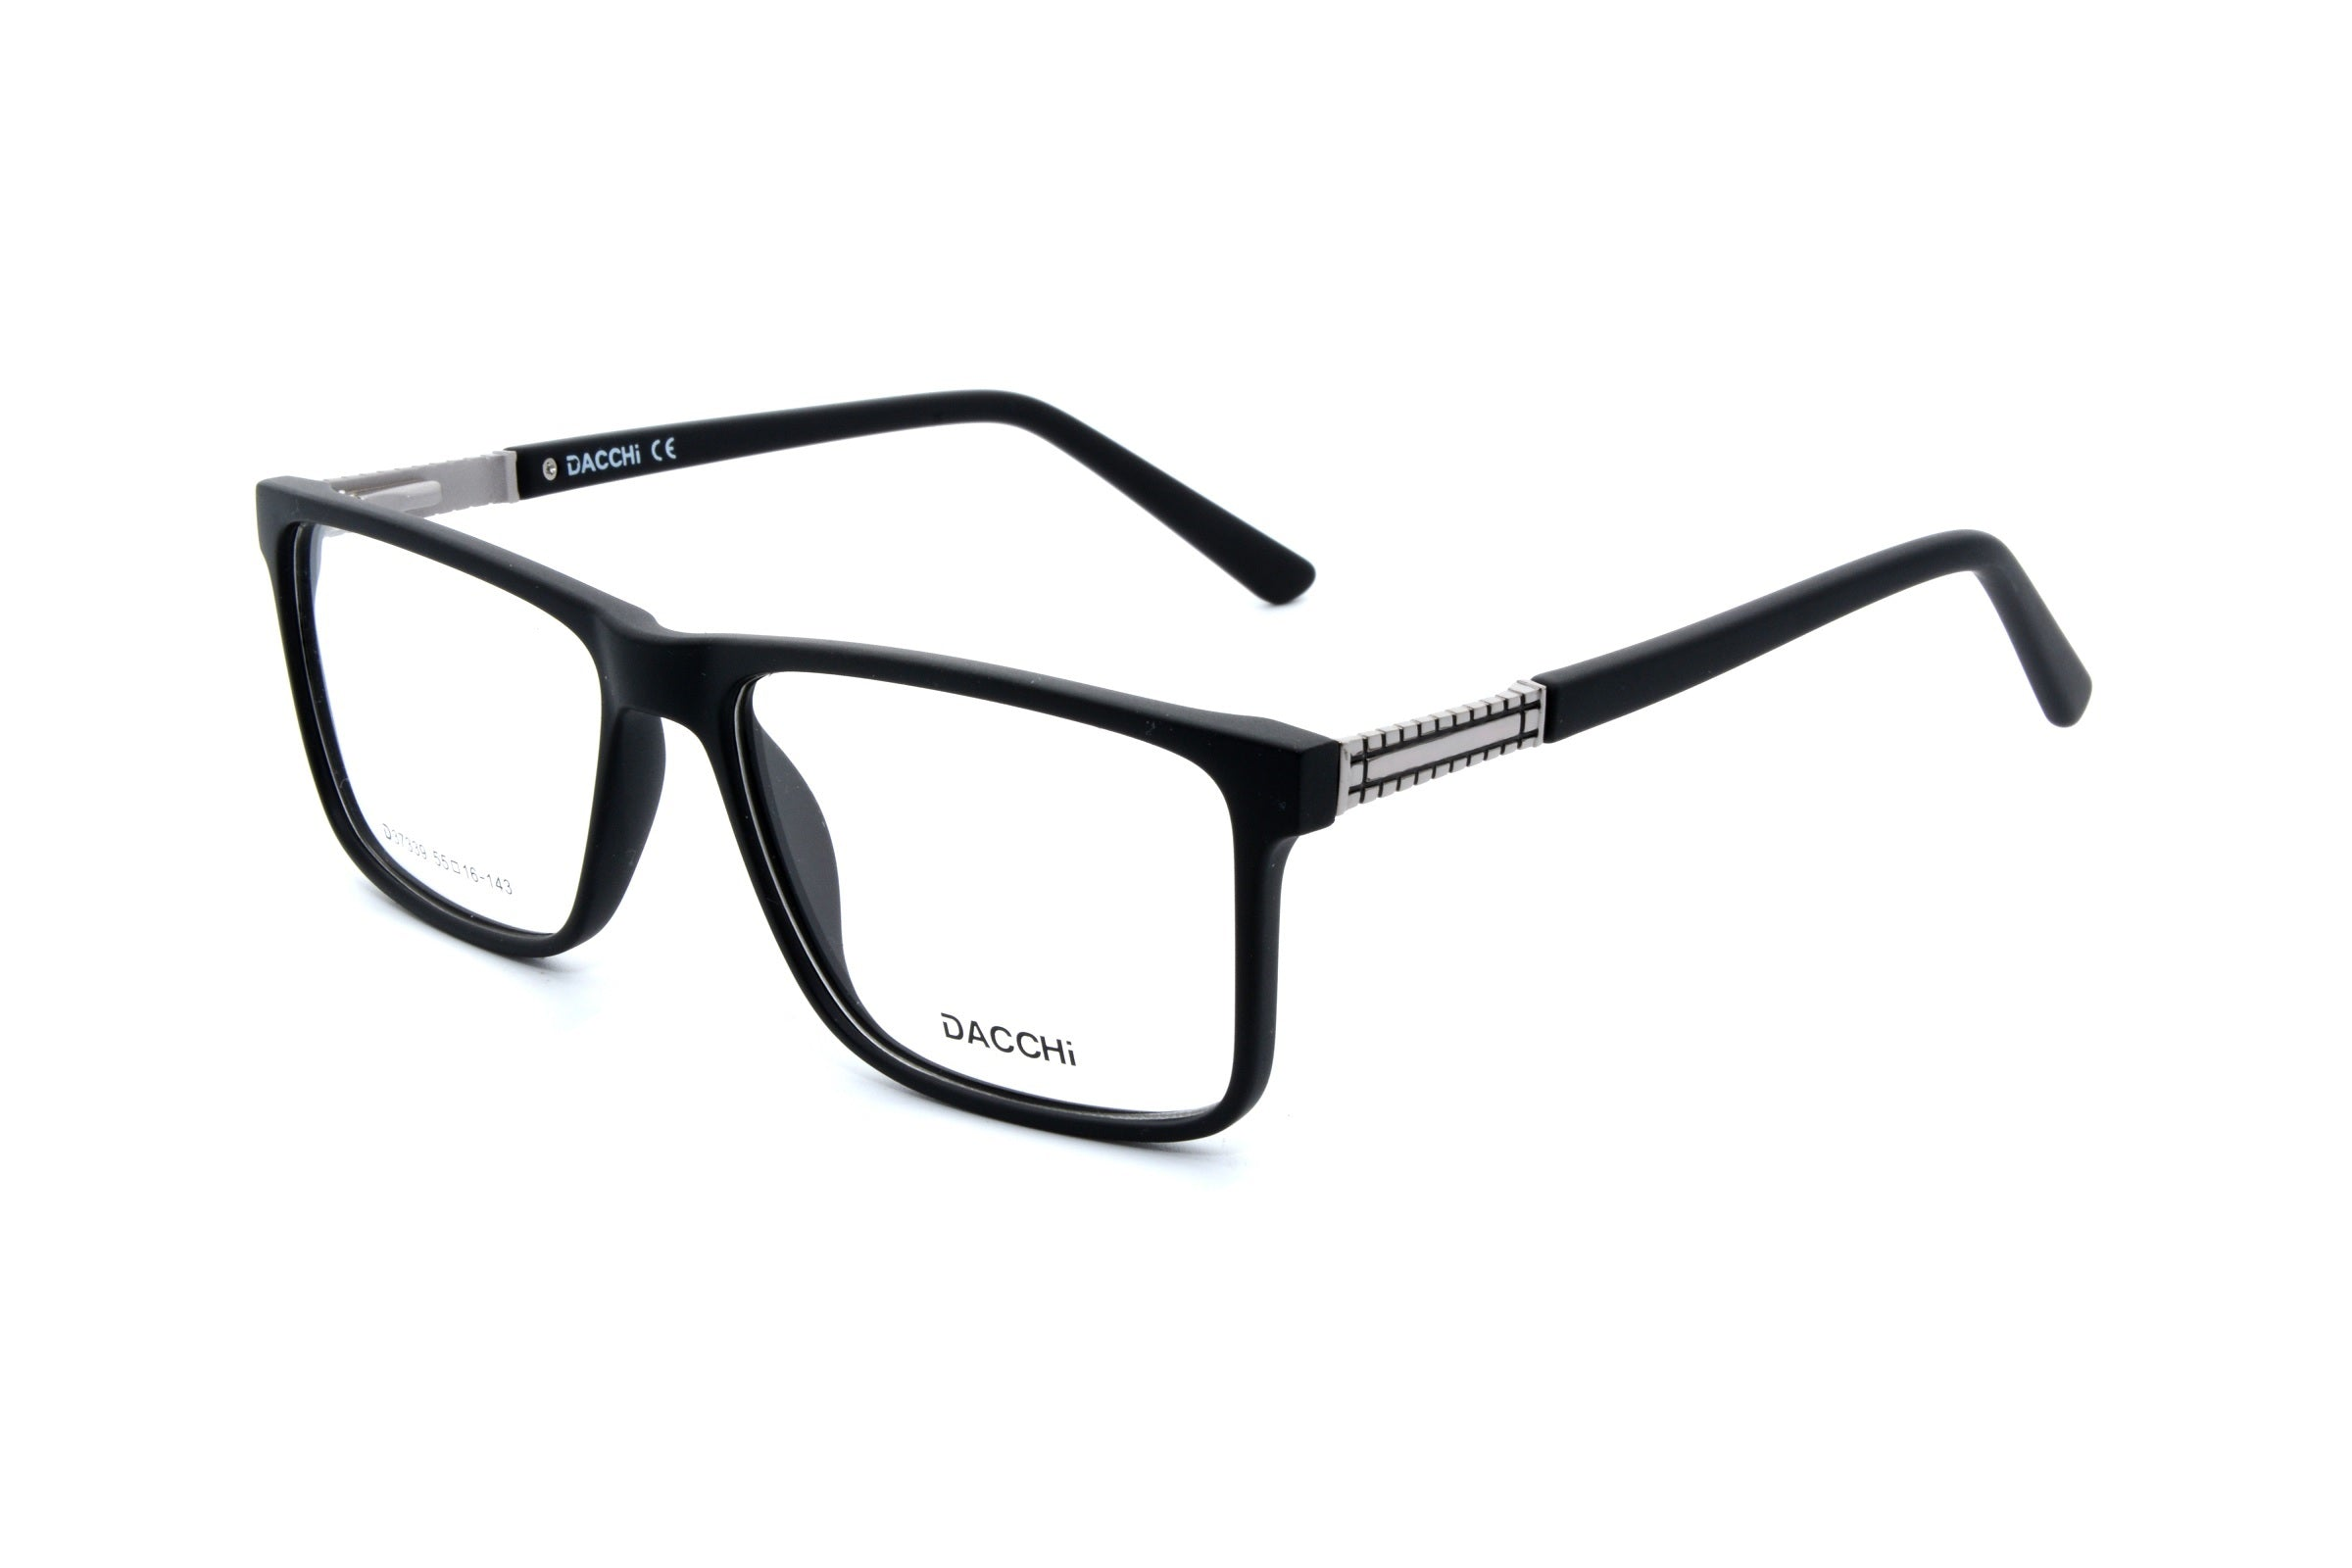 Dacchi eyewear 37339, C1 - Optics Trading